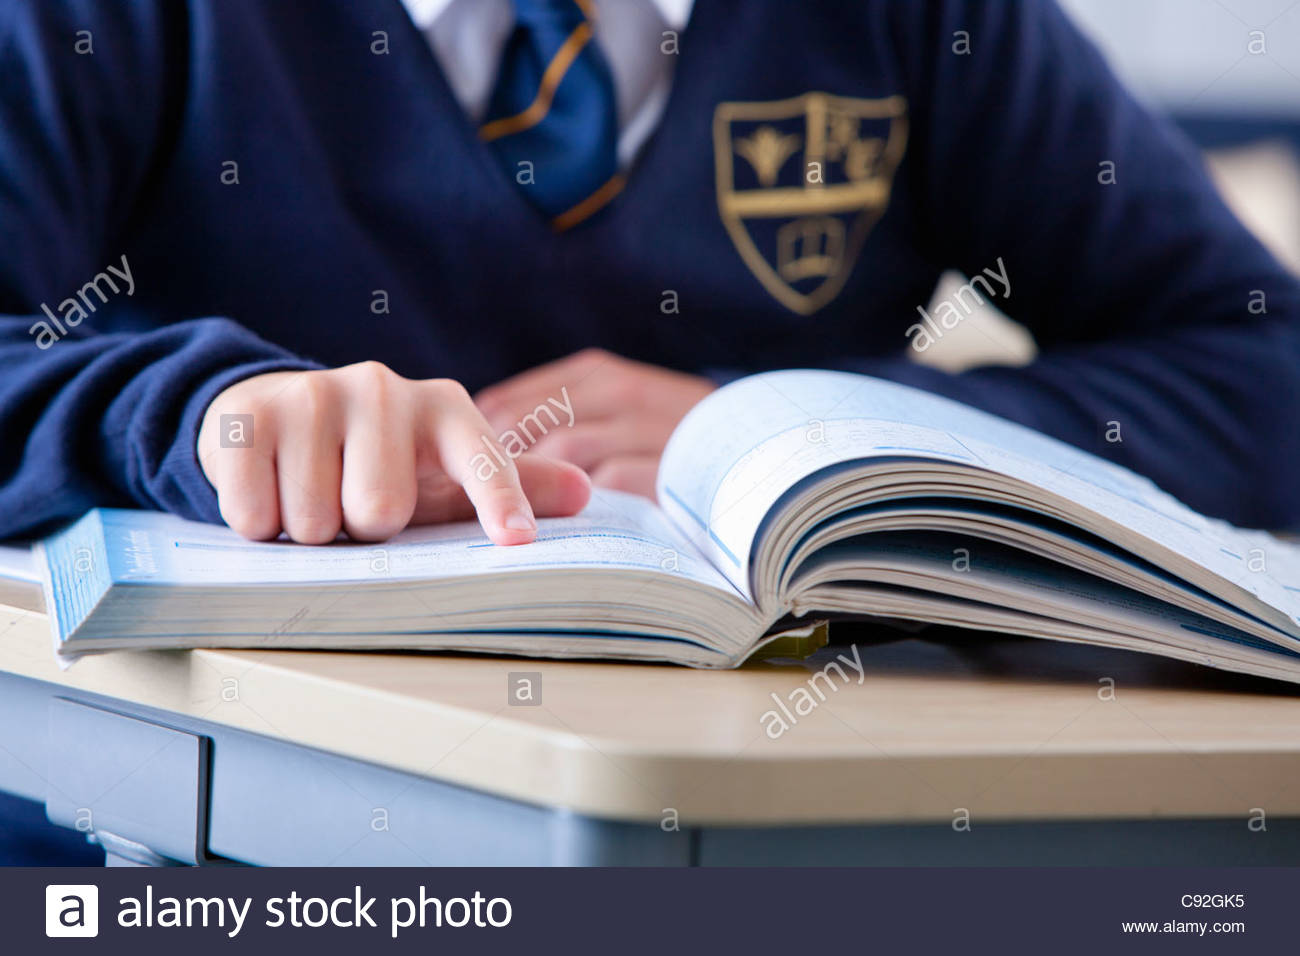 Close up of male student in school uniform pointing to page on book at desk in classroom - Stock Image